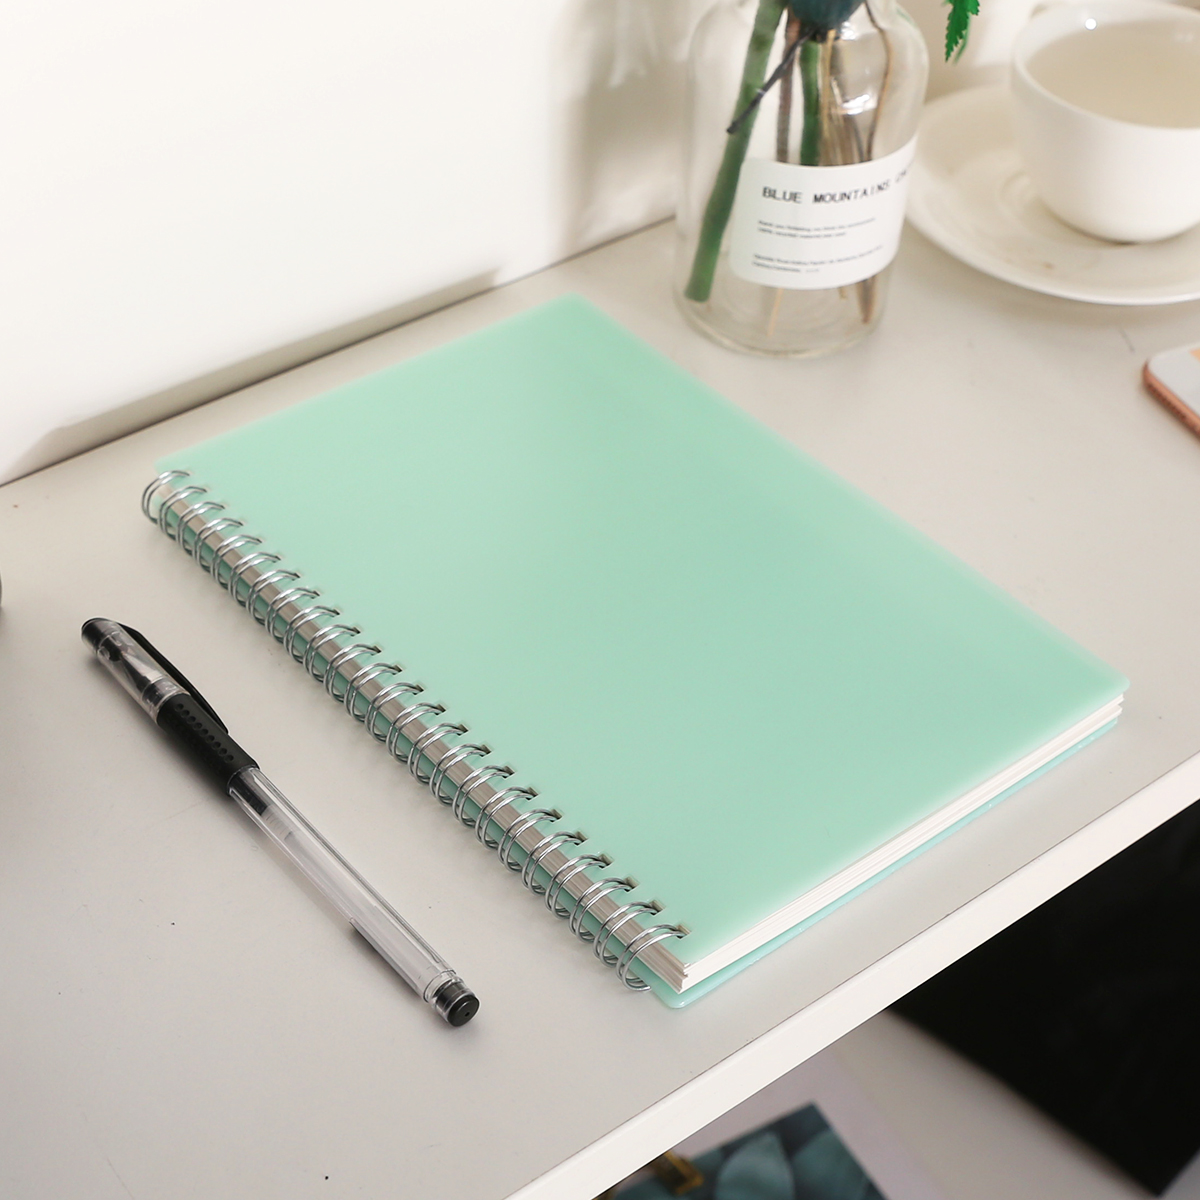 Cute PP Hardcover <font><b>Notebook</b></font> Banded Dot Grid <font><b>Spiral</b></font> <font><b>A5</b></font> <font><b>Notebook</b></font> Stationery Diary Memos for Student School Supply image